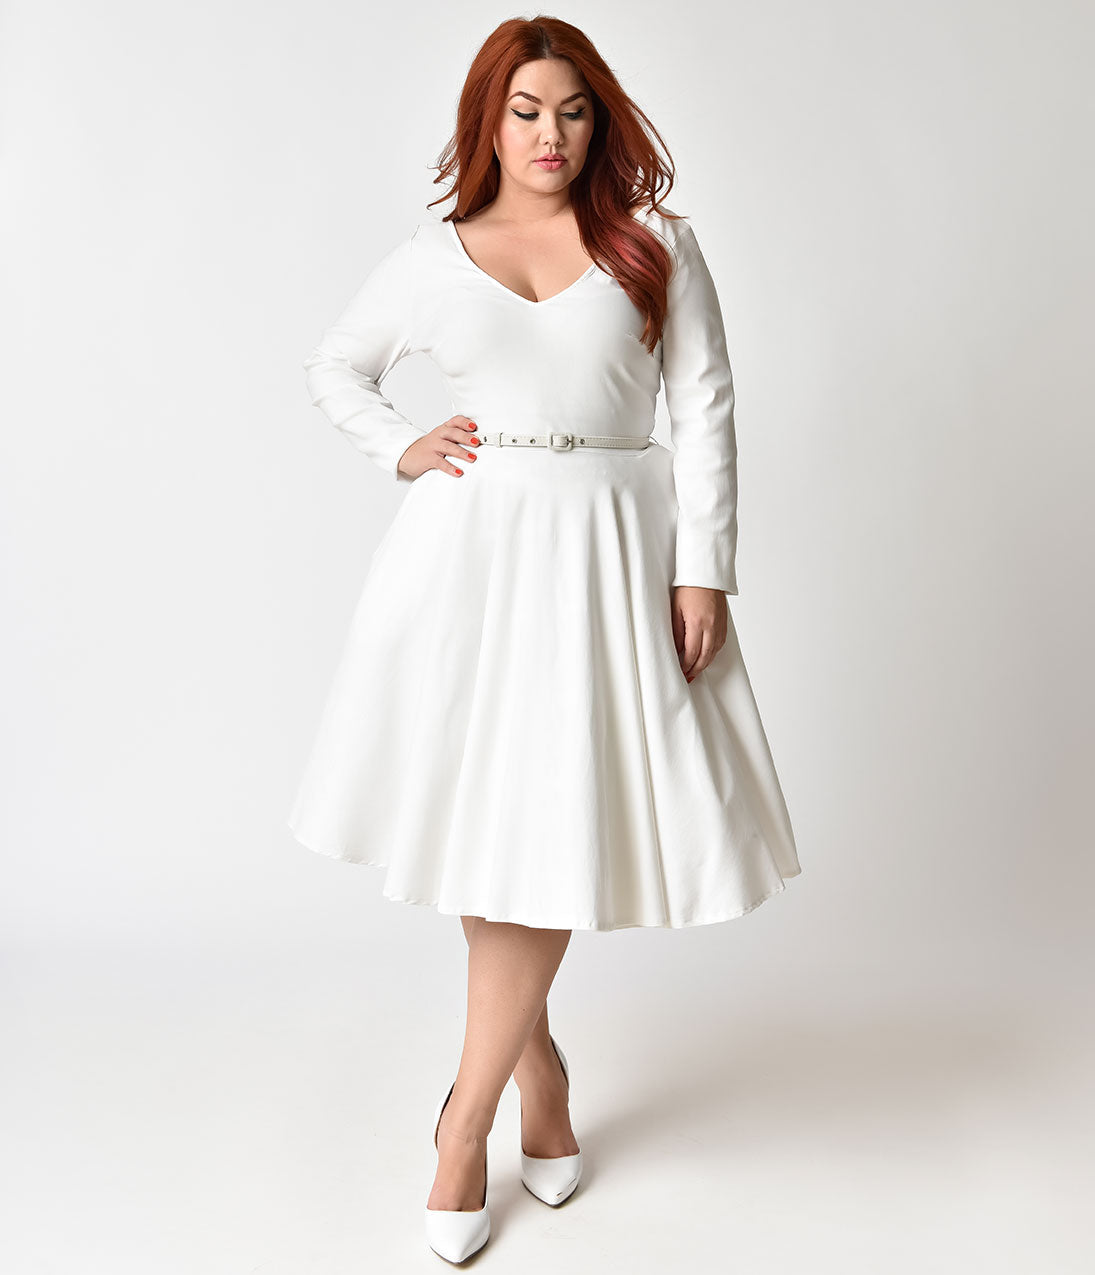 1940s Style Wedding Dresses | Classic Wedding Dresses Unique Vintage Plus Size 1950s Ivory Stretch Long Sleeve Maude Swing Dress $98.00 AT vintagedancer.com